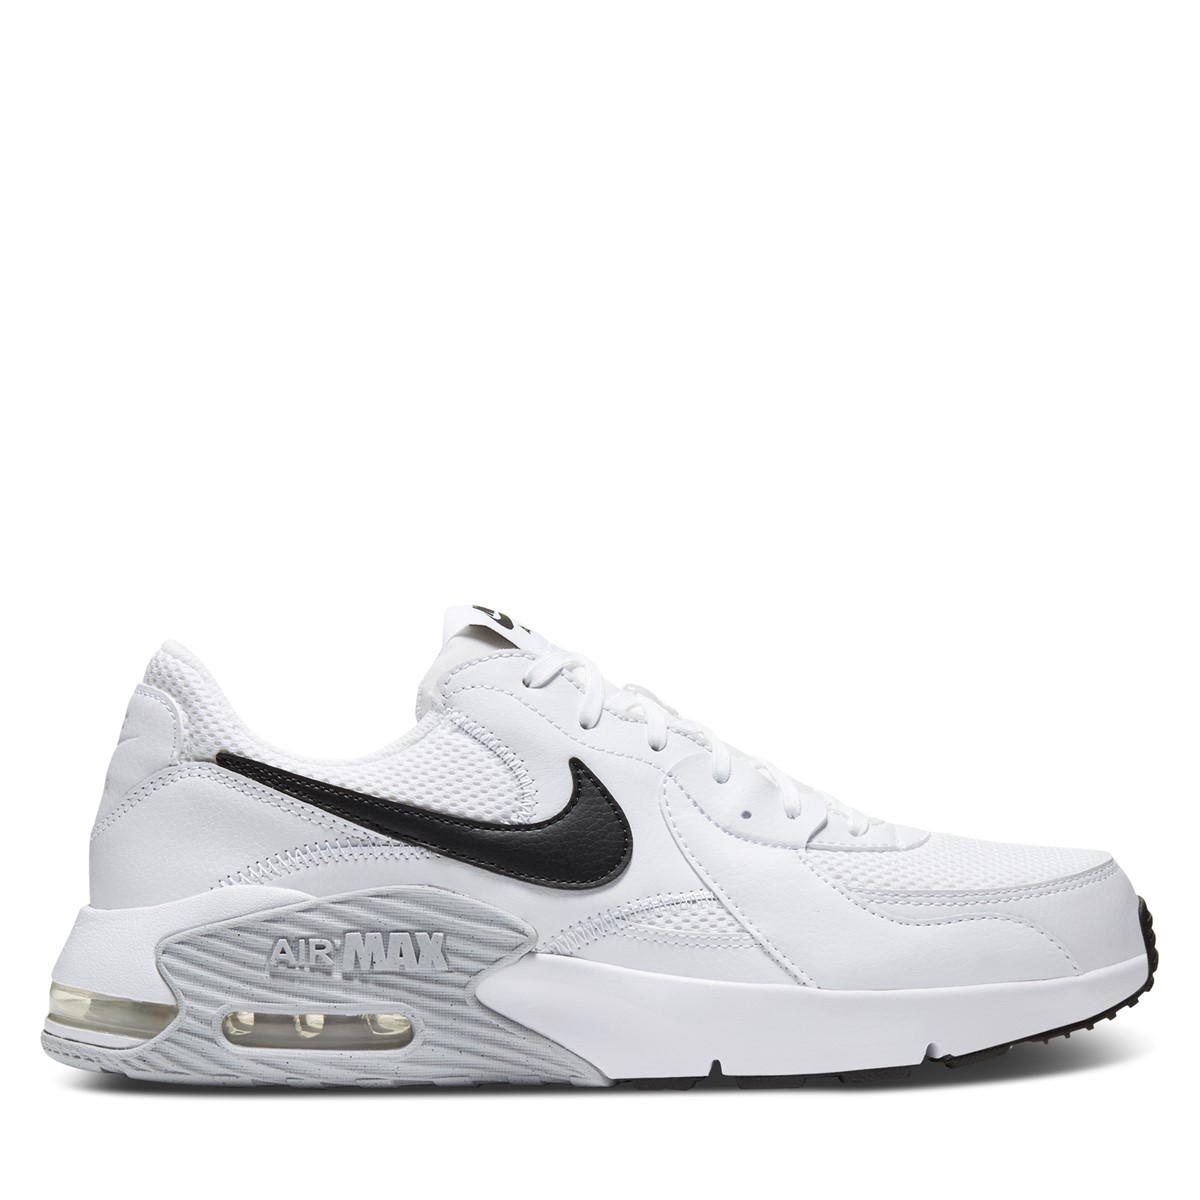 Men's Air Max Excee Sneakers in White